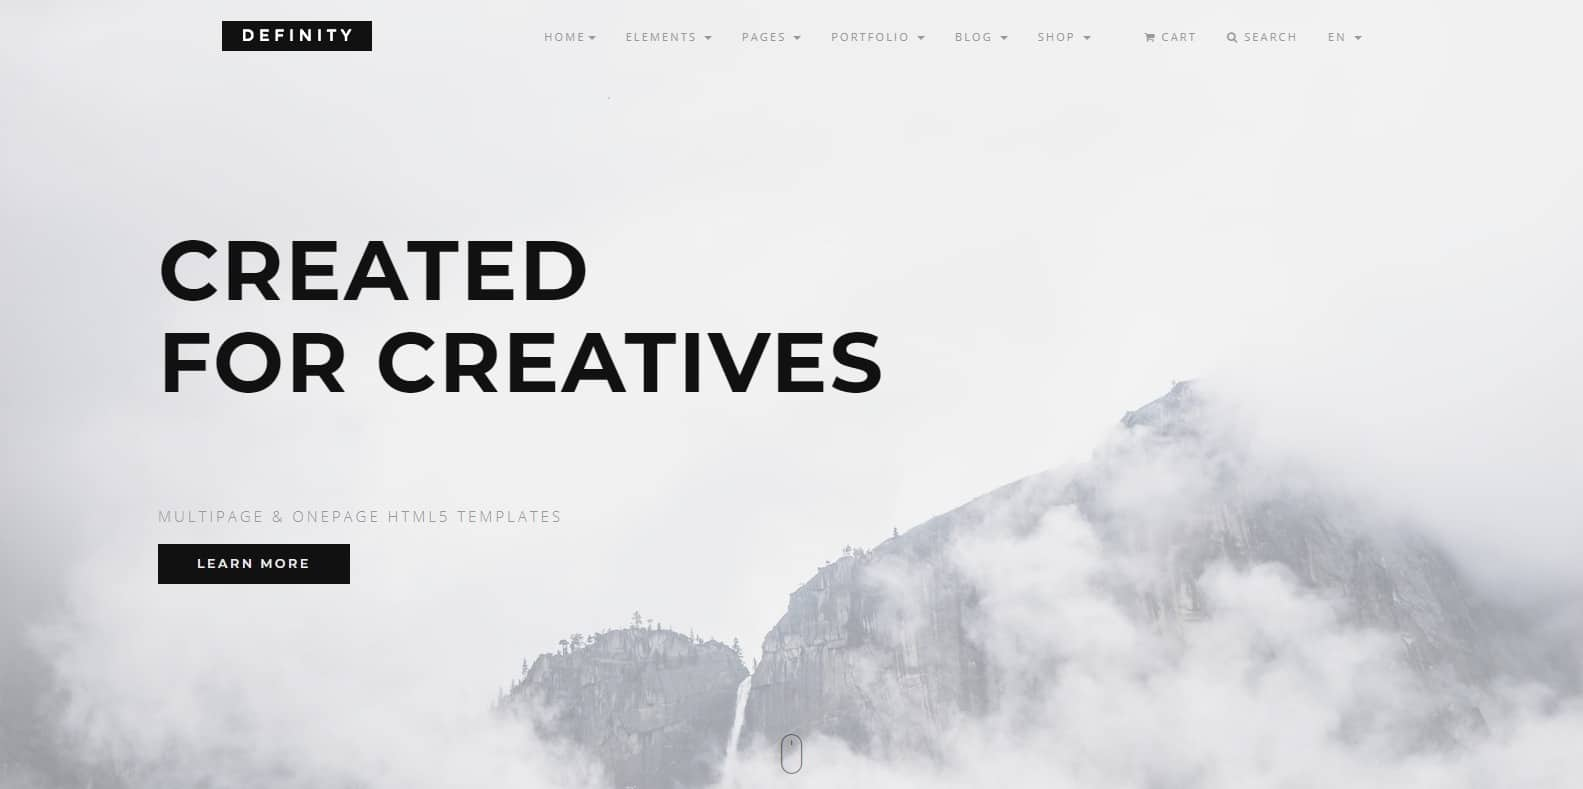 definity-photography-website-template